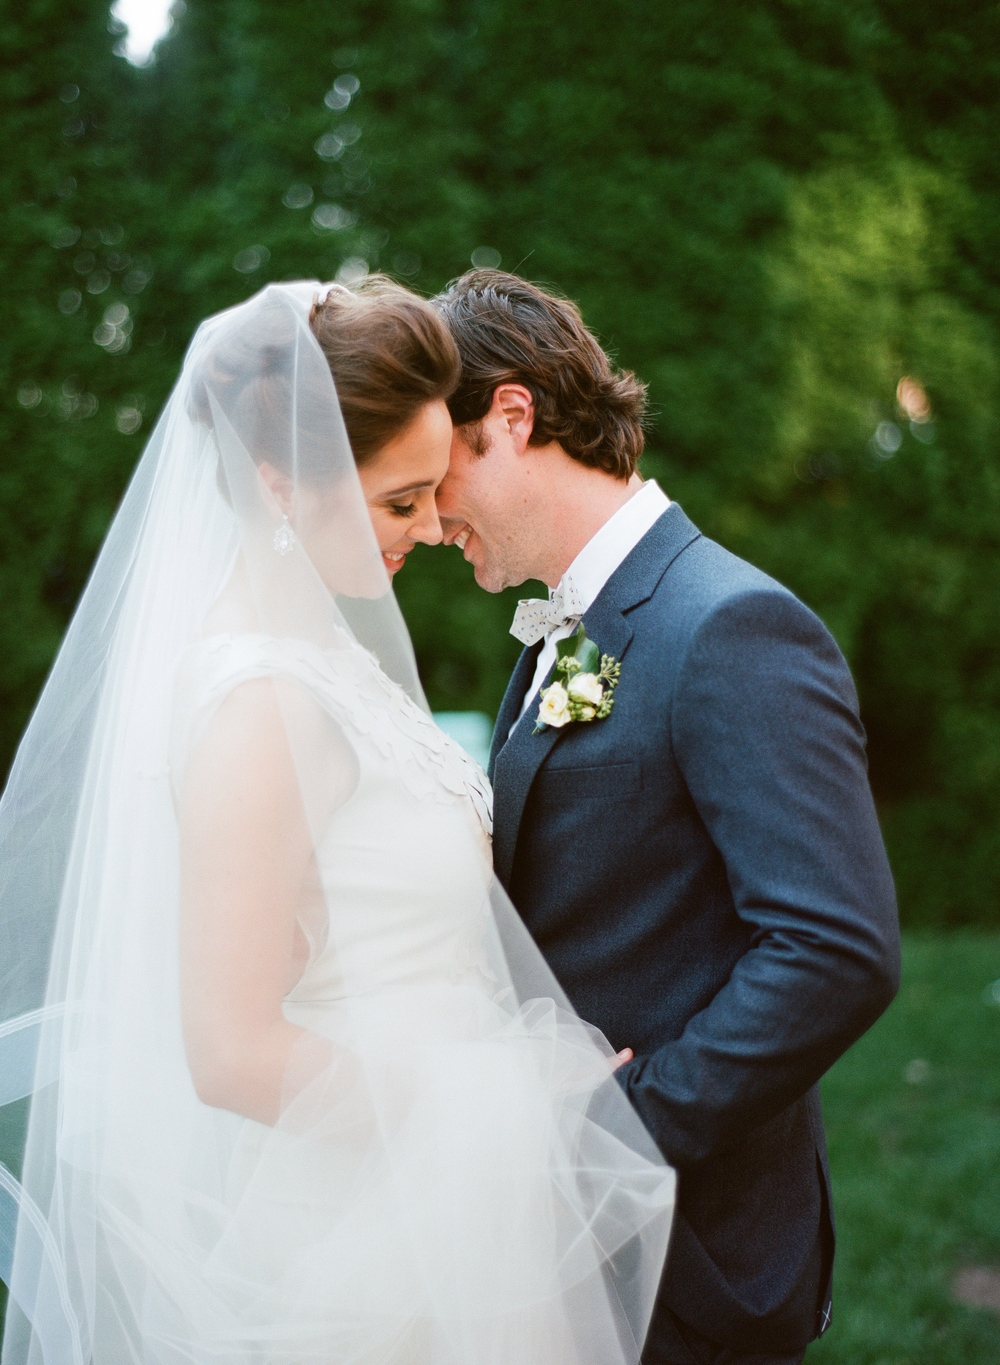 hannah_shih_hanaluluco_cj_isaac_charlie_juliet_ombre_chambray_prospect_park_brooklyn_wedding_29.jpg